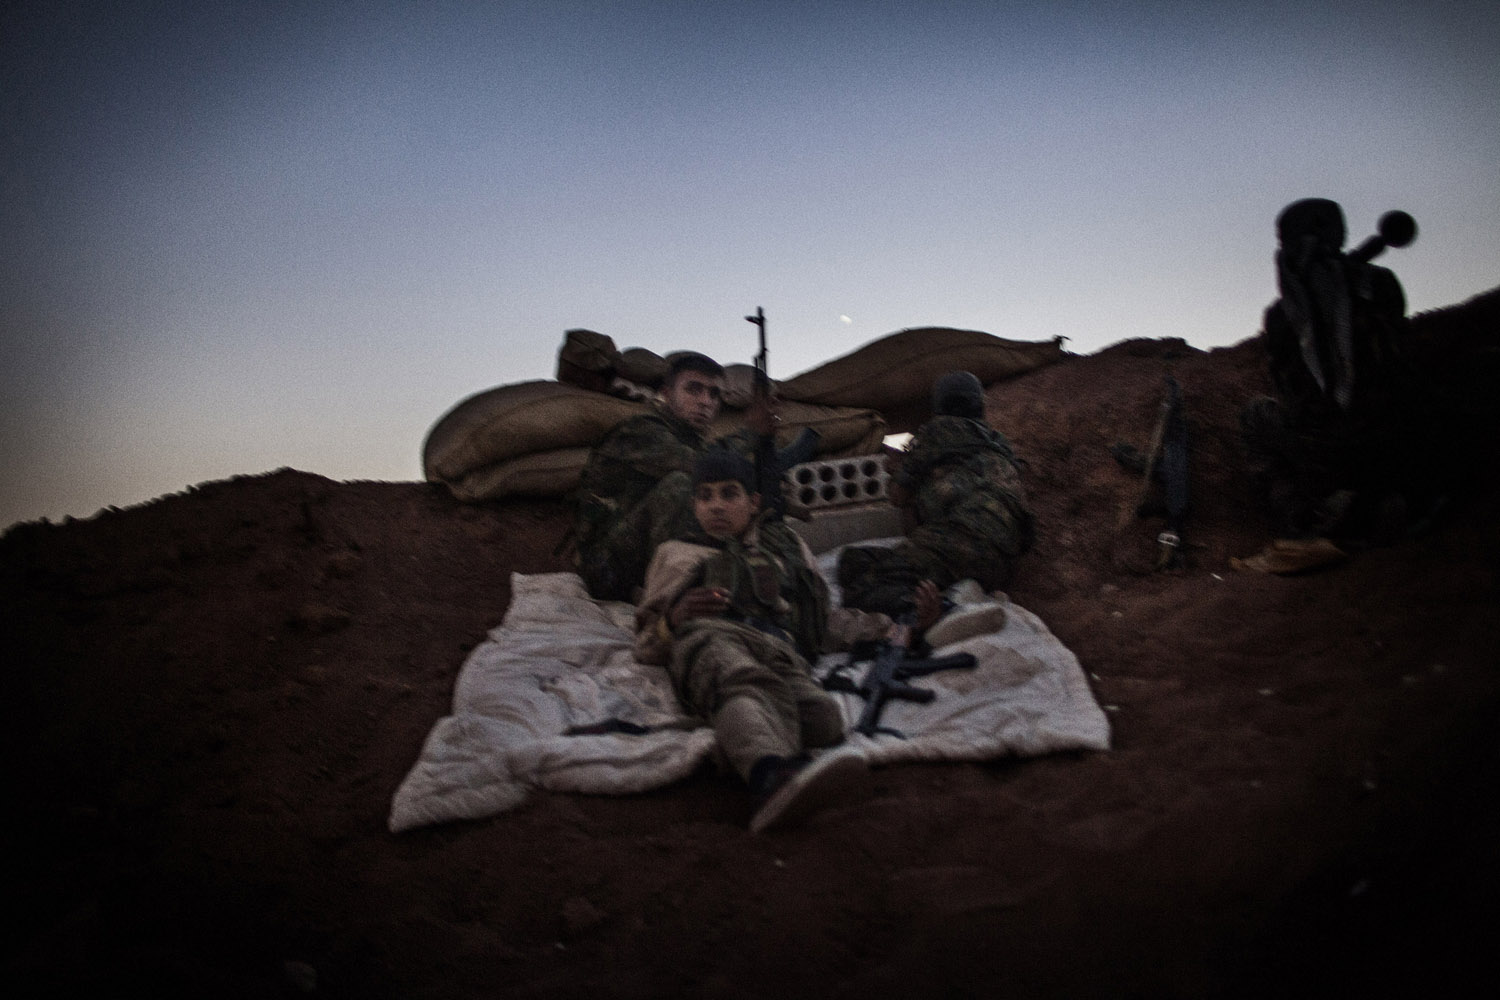 An armed YPG fighter rests while his companion take position behind sand bags inside a trench in the Syrian town of Ras al-Ain, close to the Turkish border.